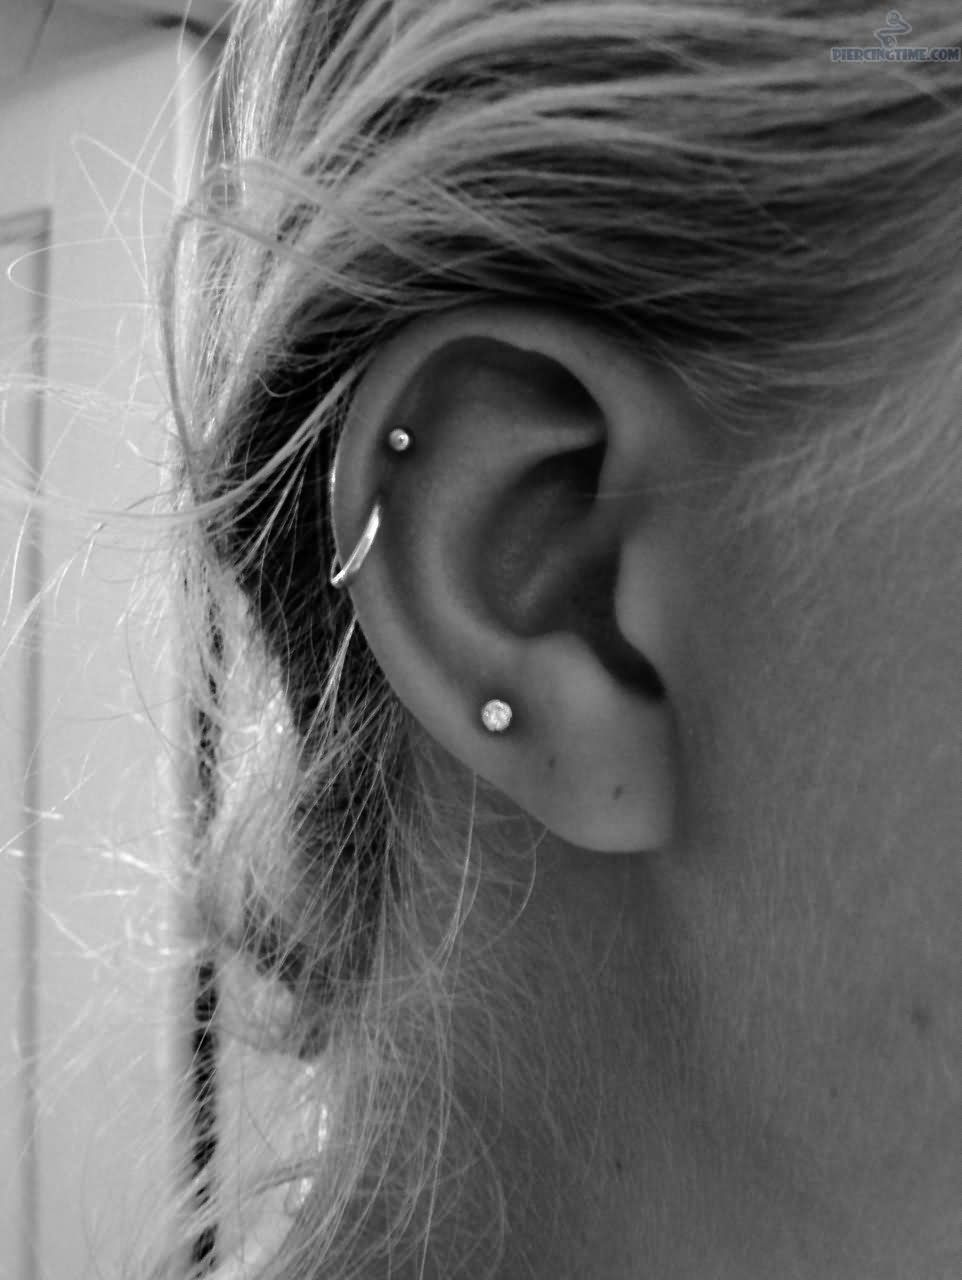 Ear Cartilage And Helix Piercing For Girls